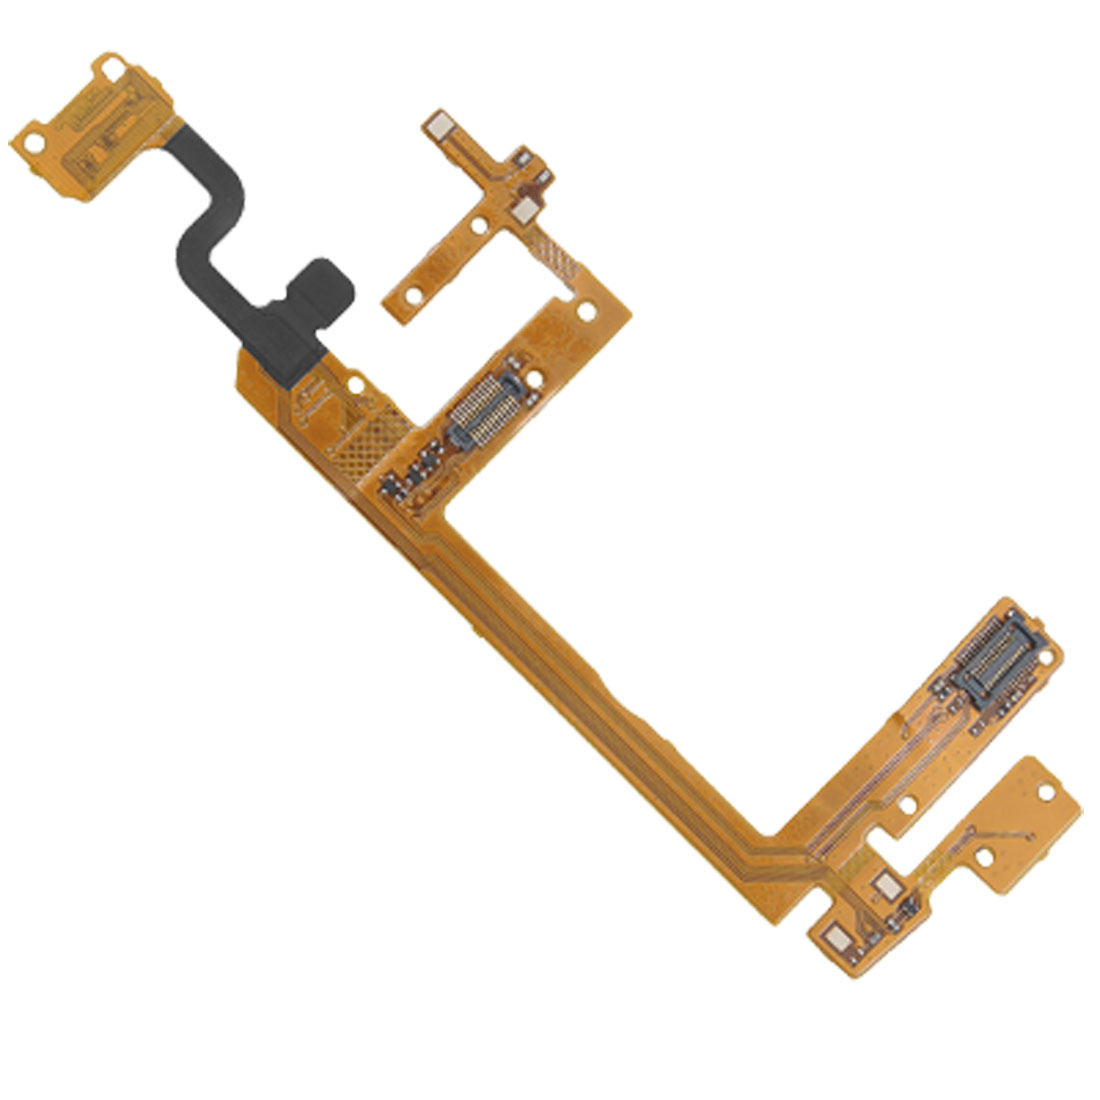 LCD Flex Cable Ribbon Replacement for Nokia 2720